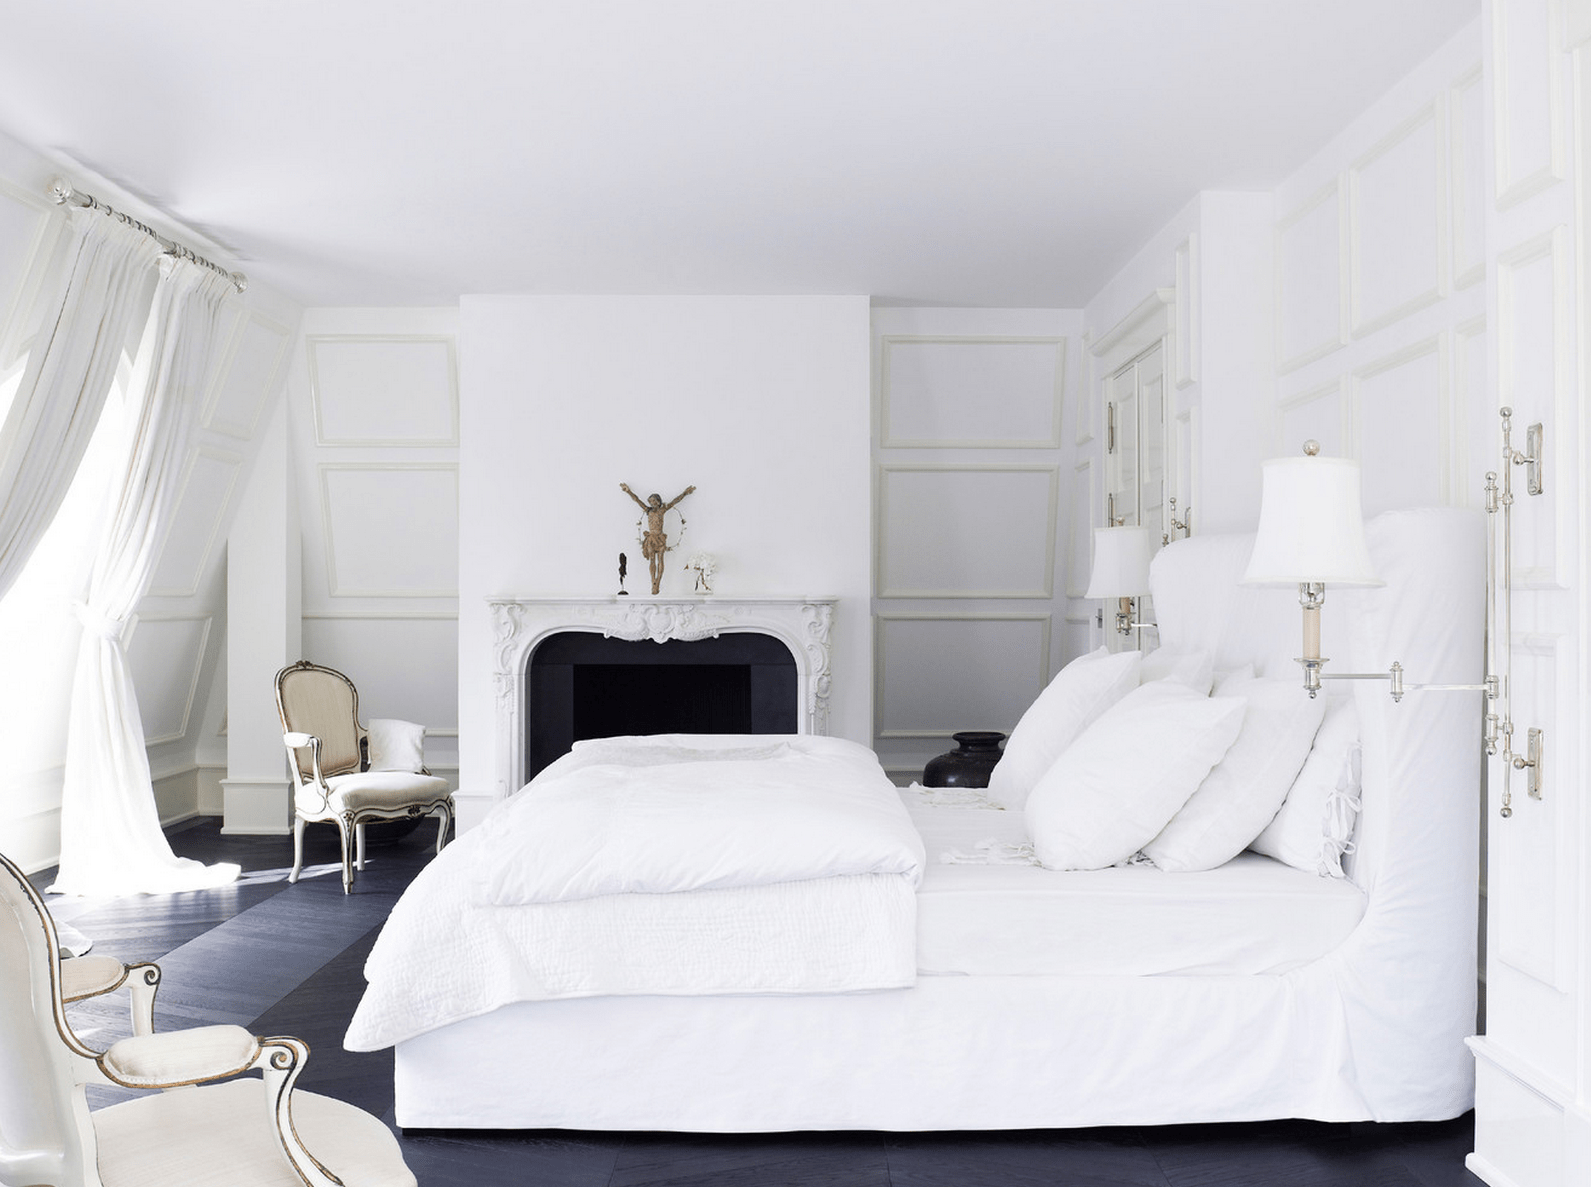 White Bedroom Design Ideas Collection for Your Home on Small Room Pallet Bedroom Ideas  id=73777